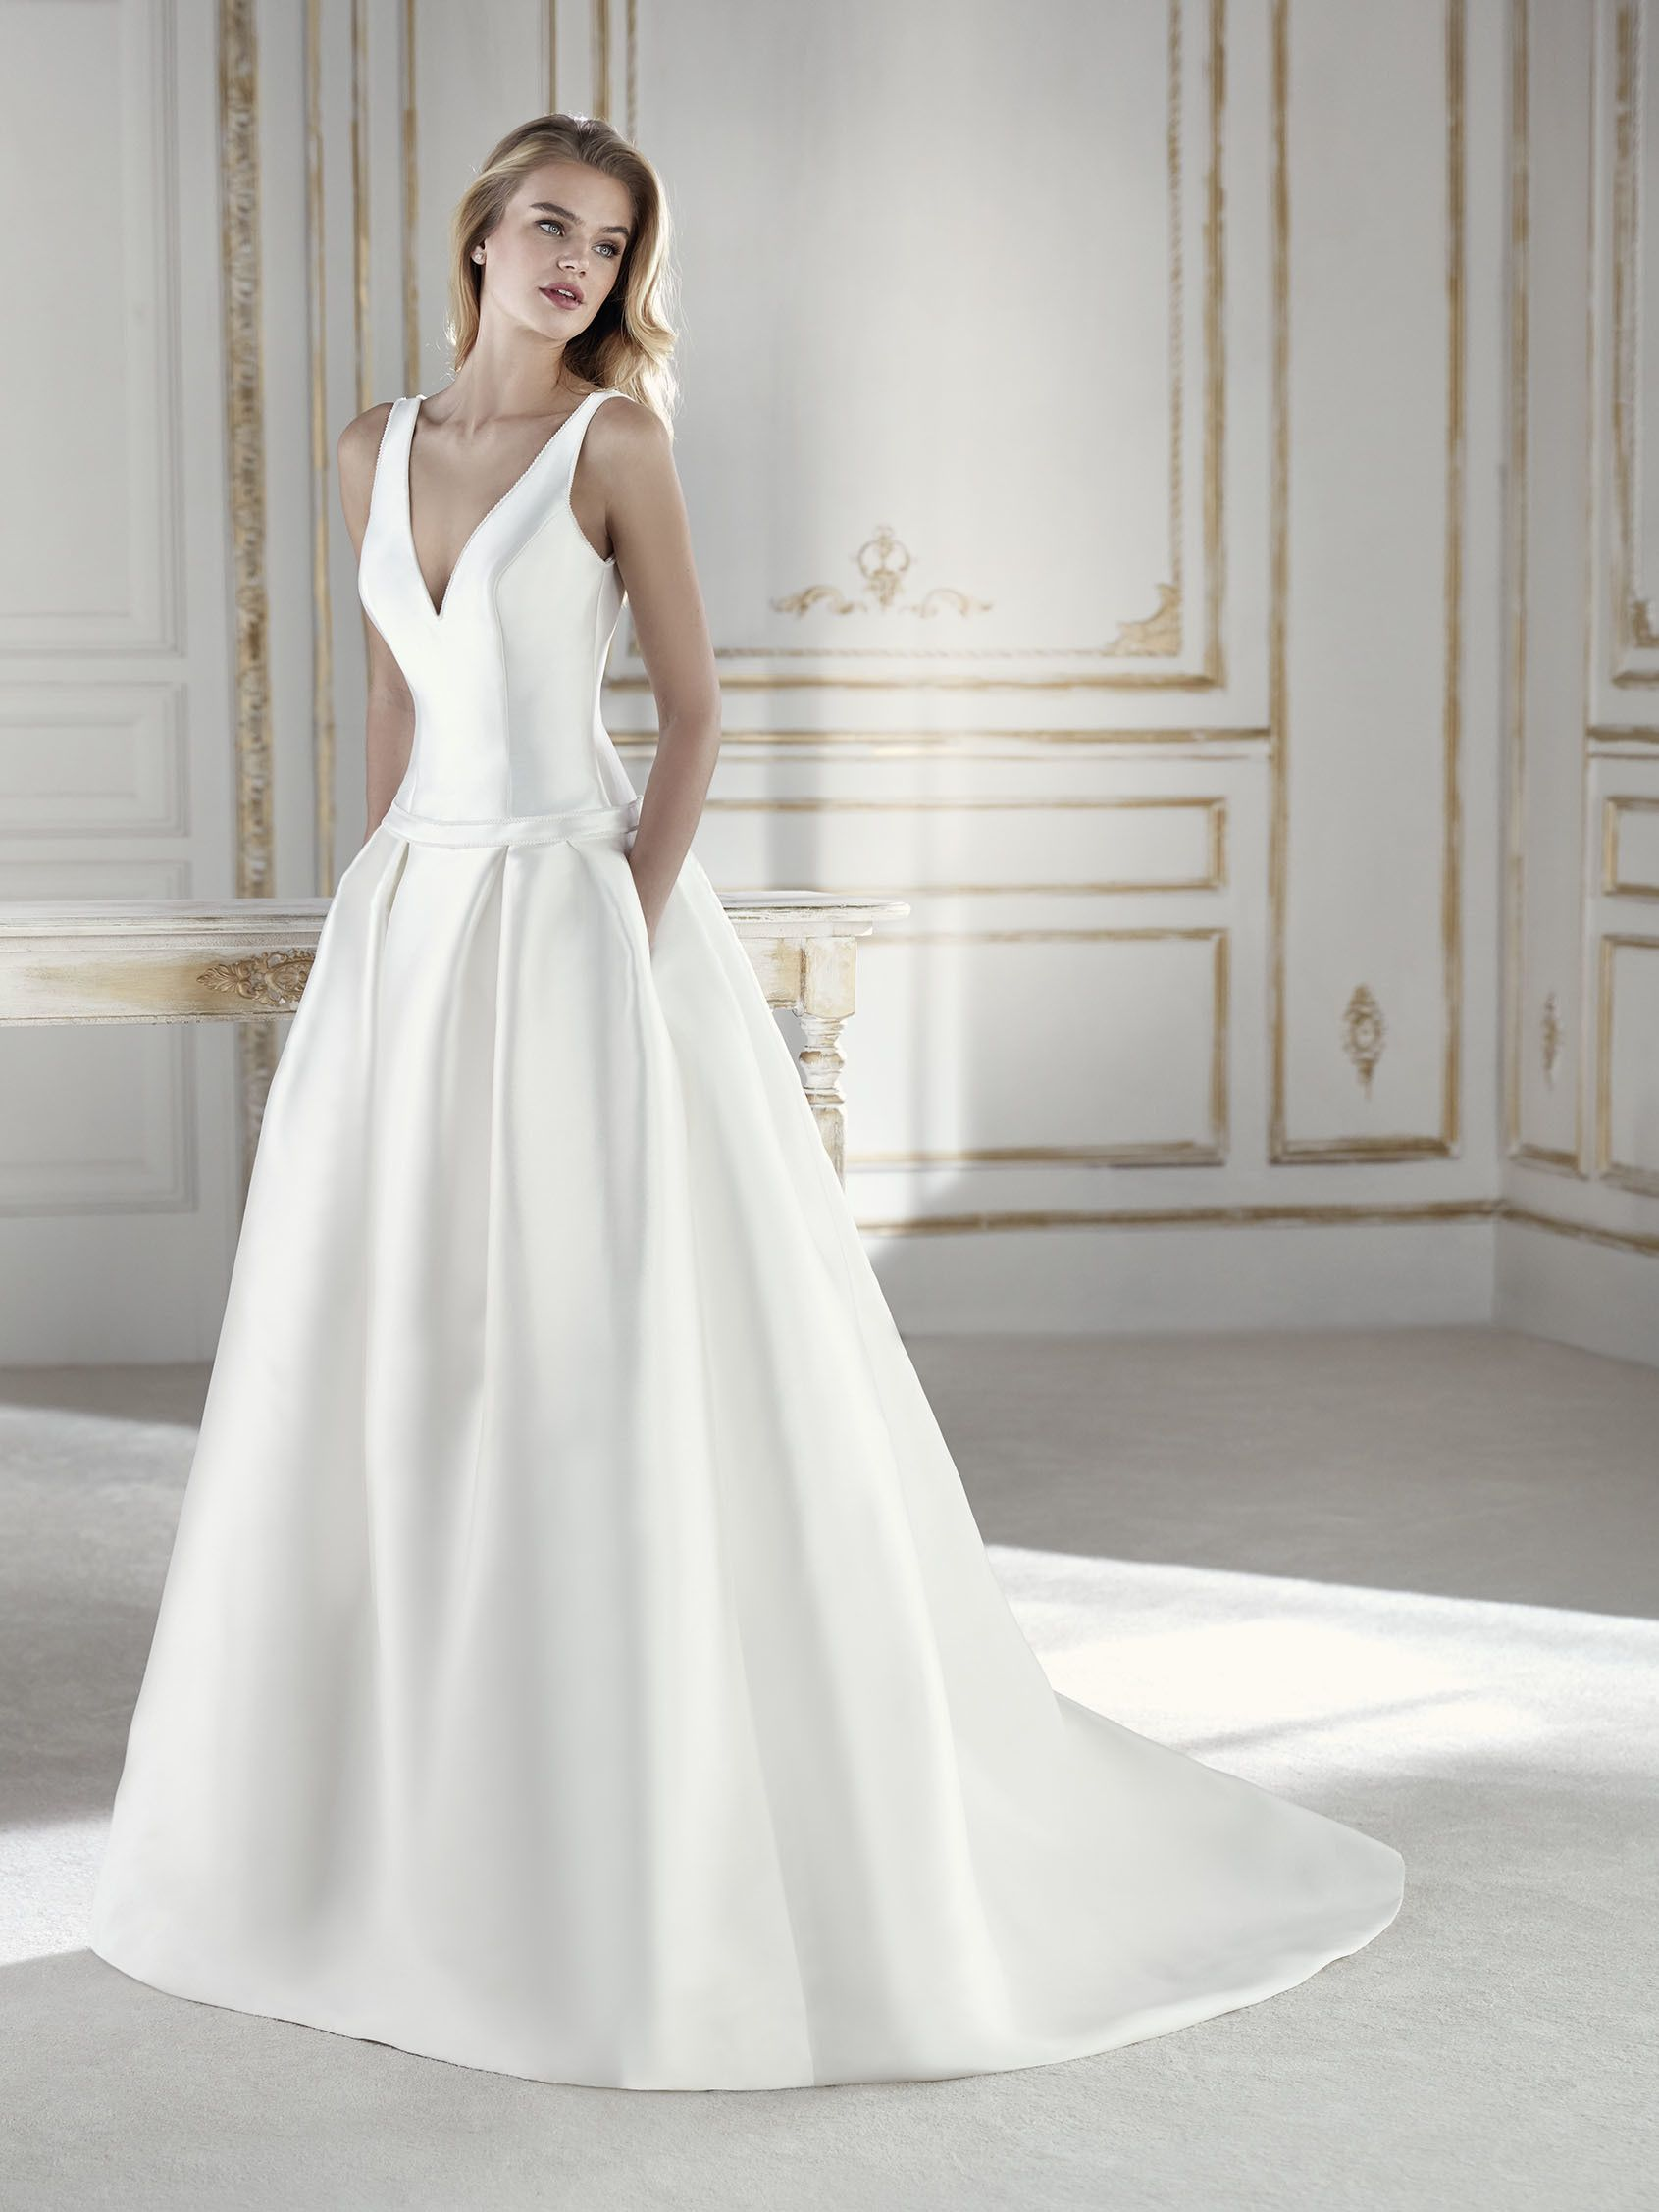 Fashion week Wedding Island dresses style pictures for woman